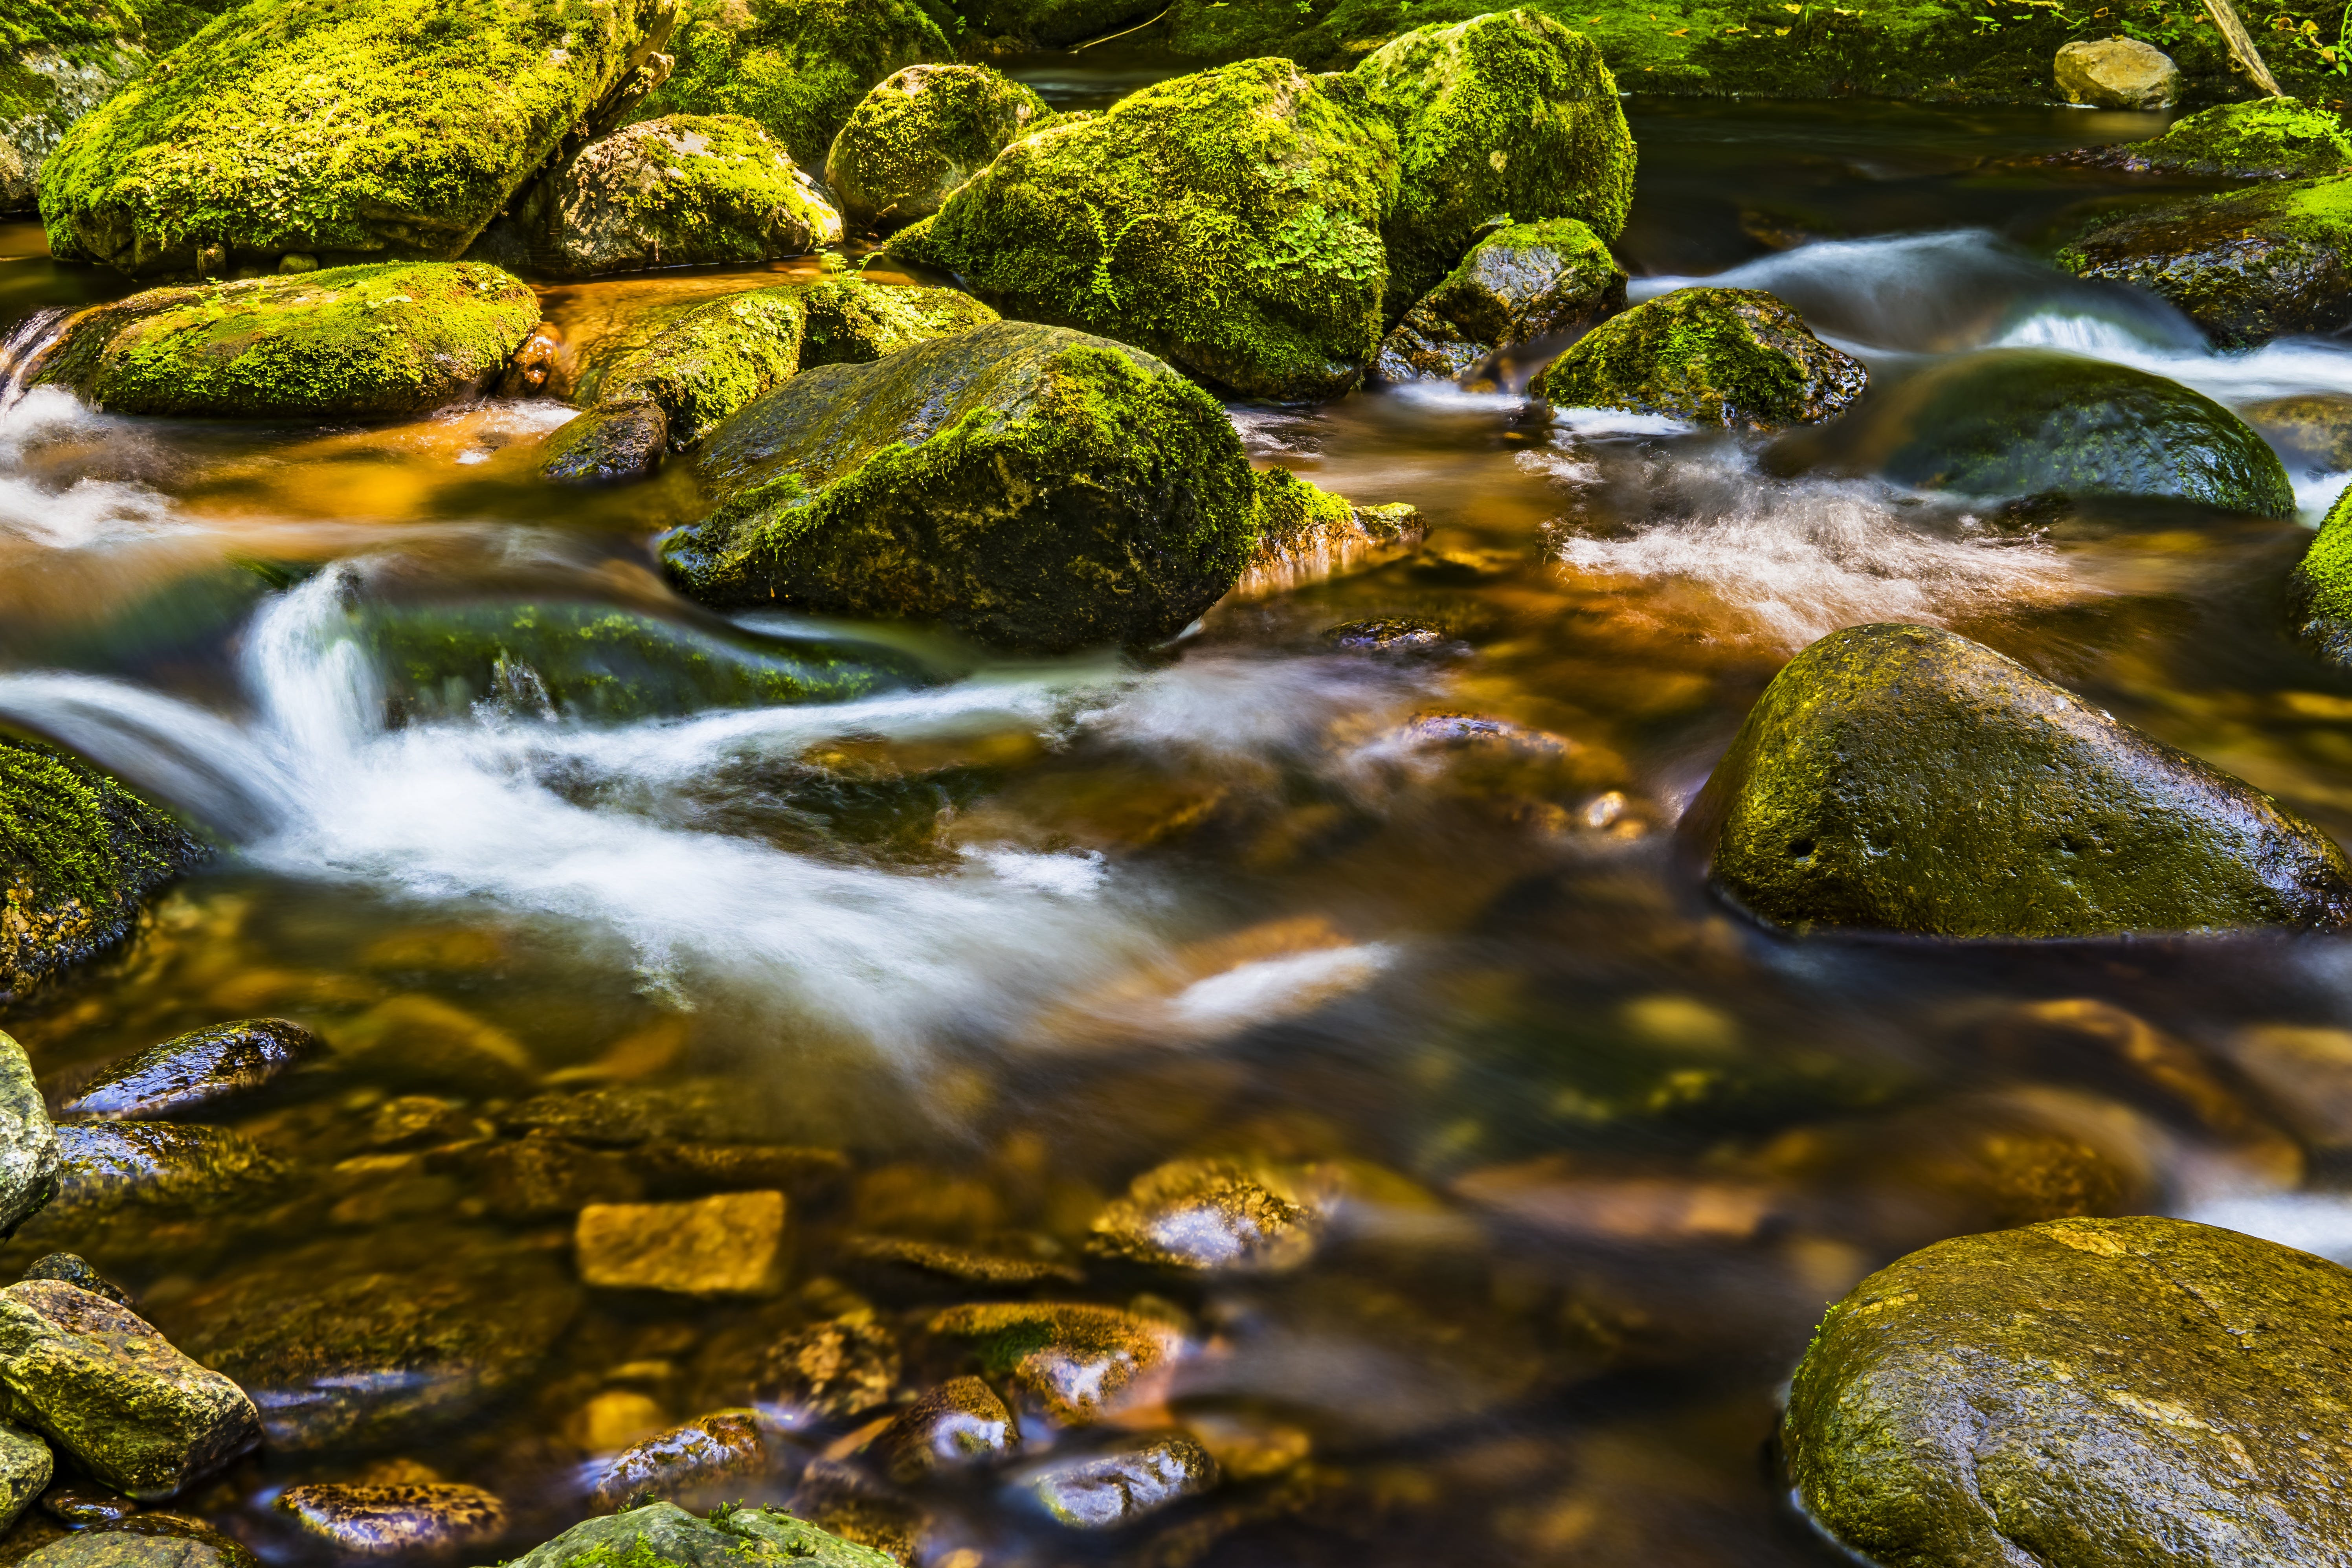 Timelapse Photography of River Flowing Through Moss-covered Rocks